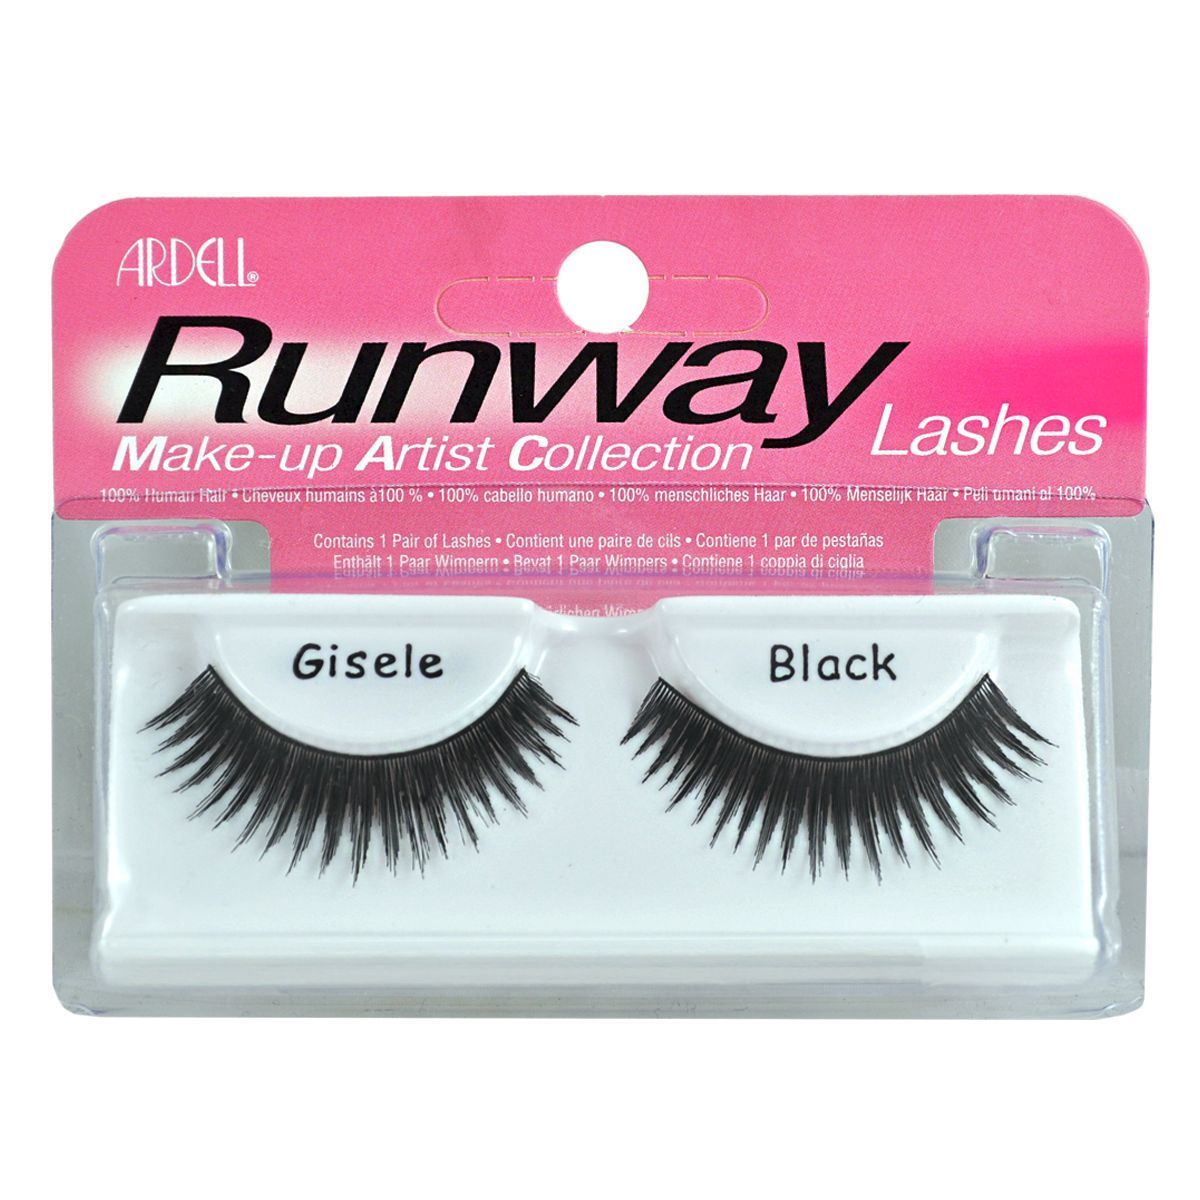 4139c7fc118 Gisele Ardell Runway Lashes Make-Up Artist Collection | Lashes ...